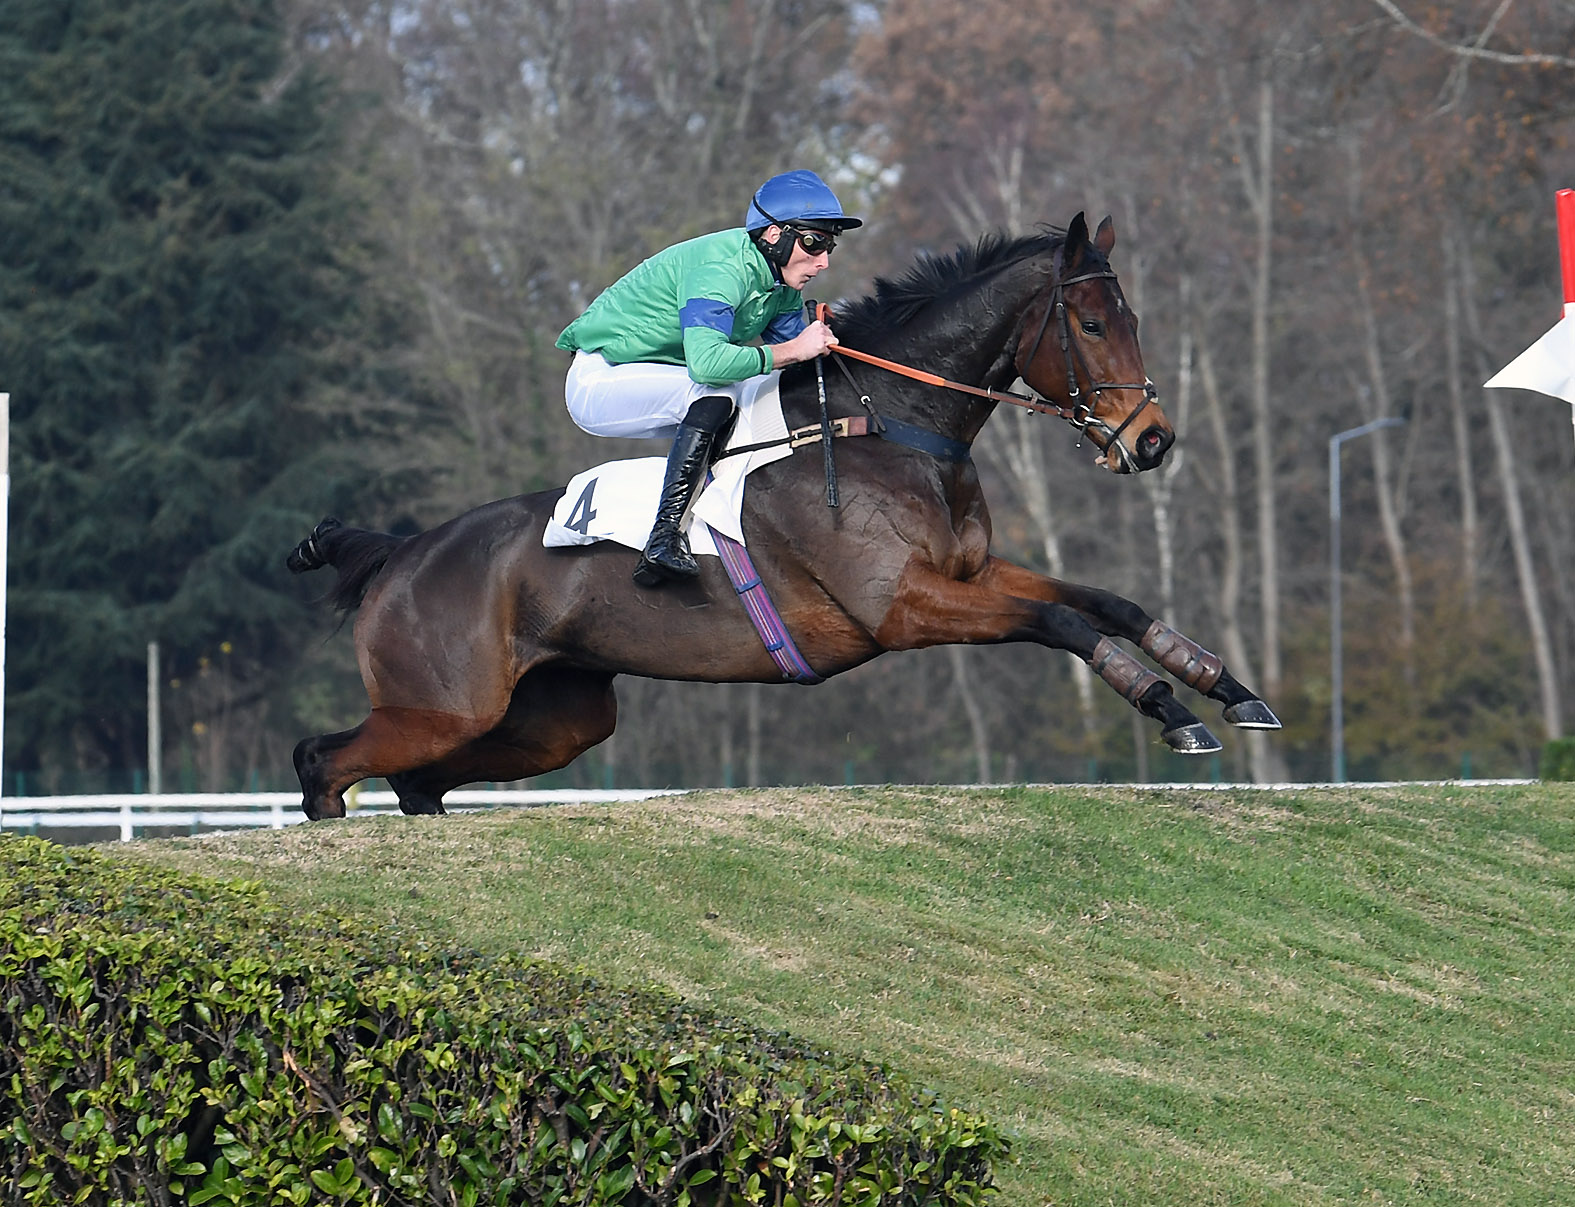 PRIX HUBERT DE NAVAILLES (CROSS-COUNTRY) - Net Lady, un vrai chat